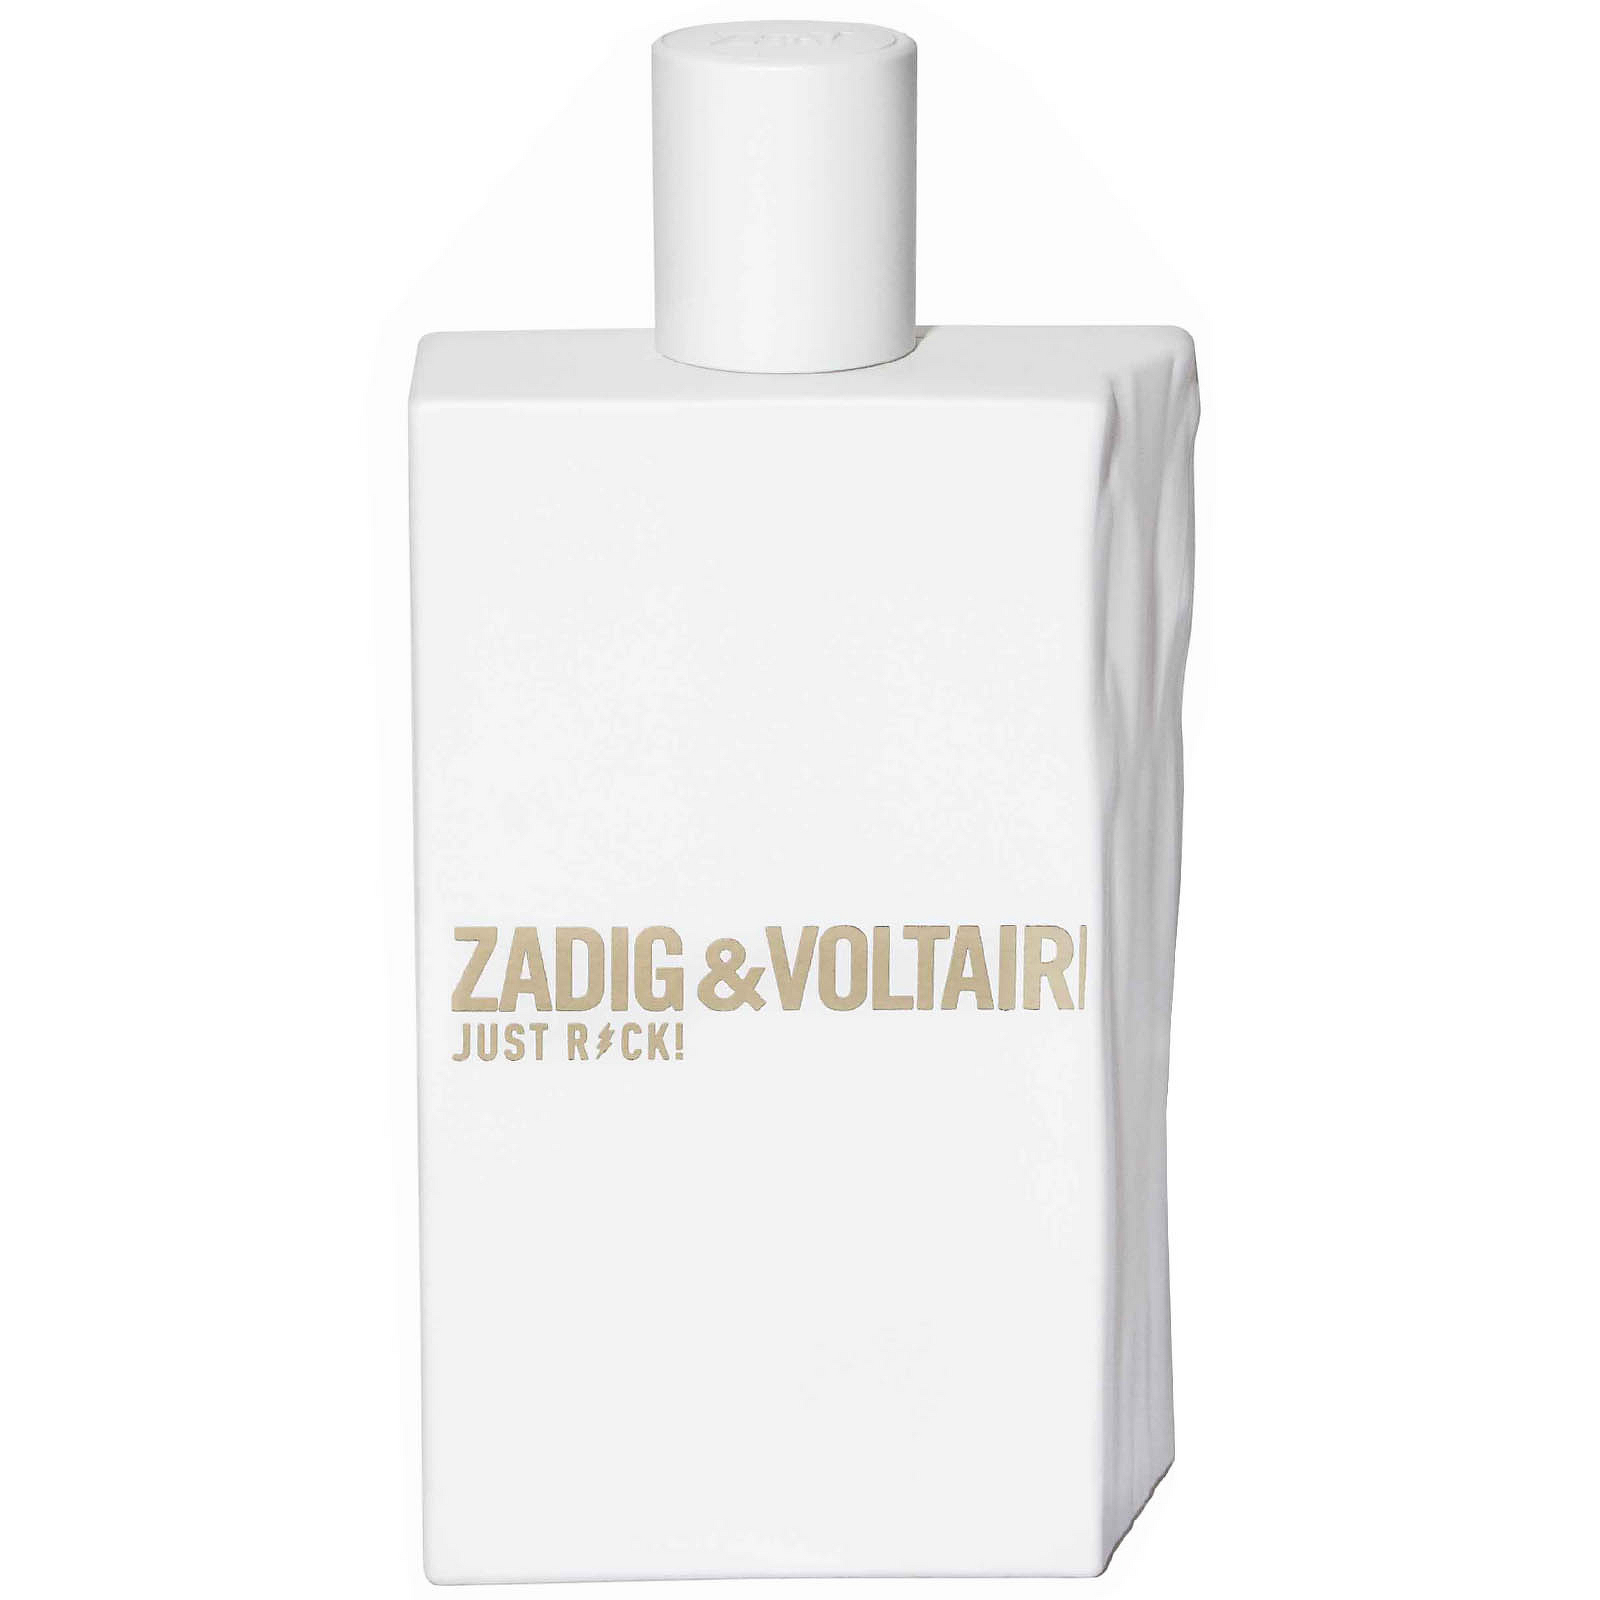 Zadig & Voltaire Just Rock! Eau de Parfum Spray 100ml